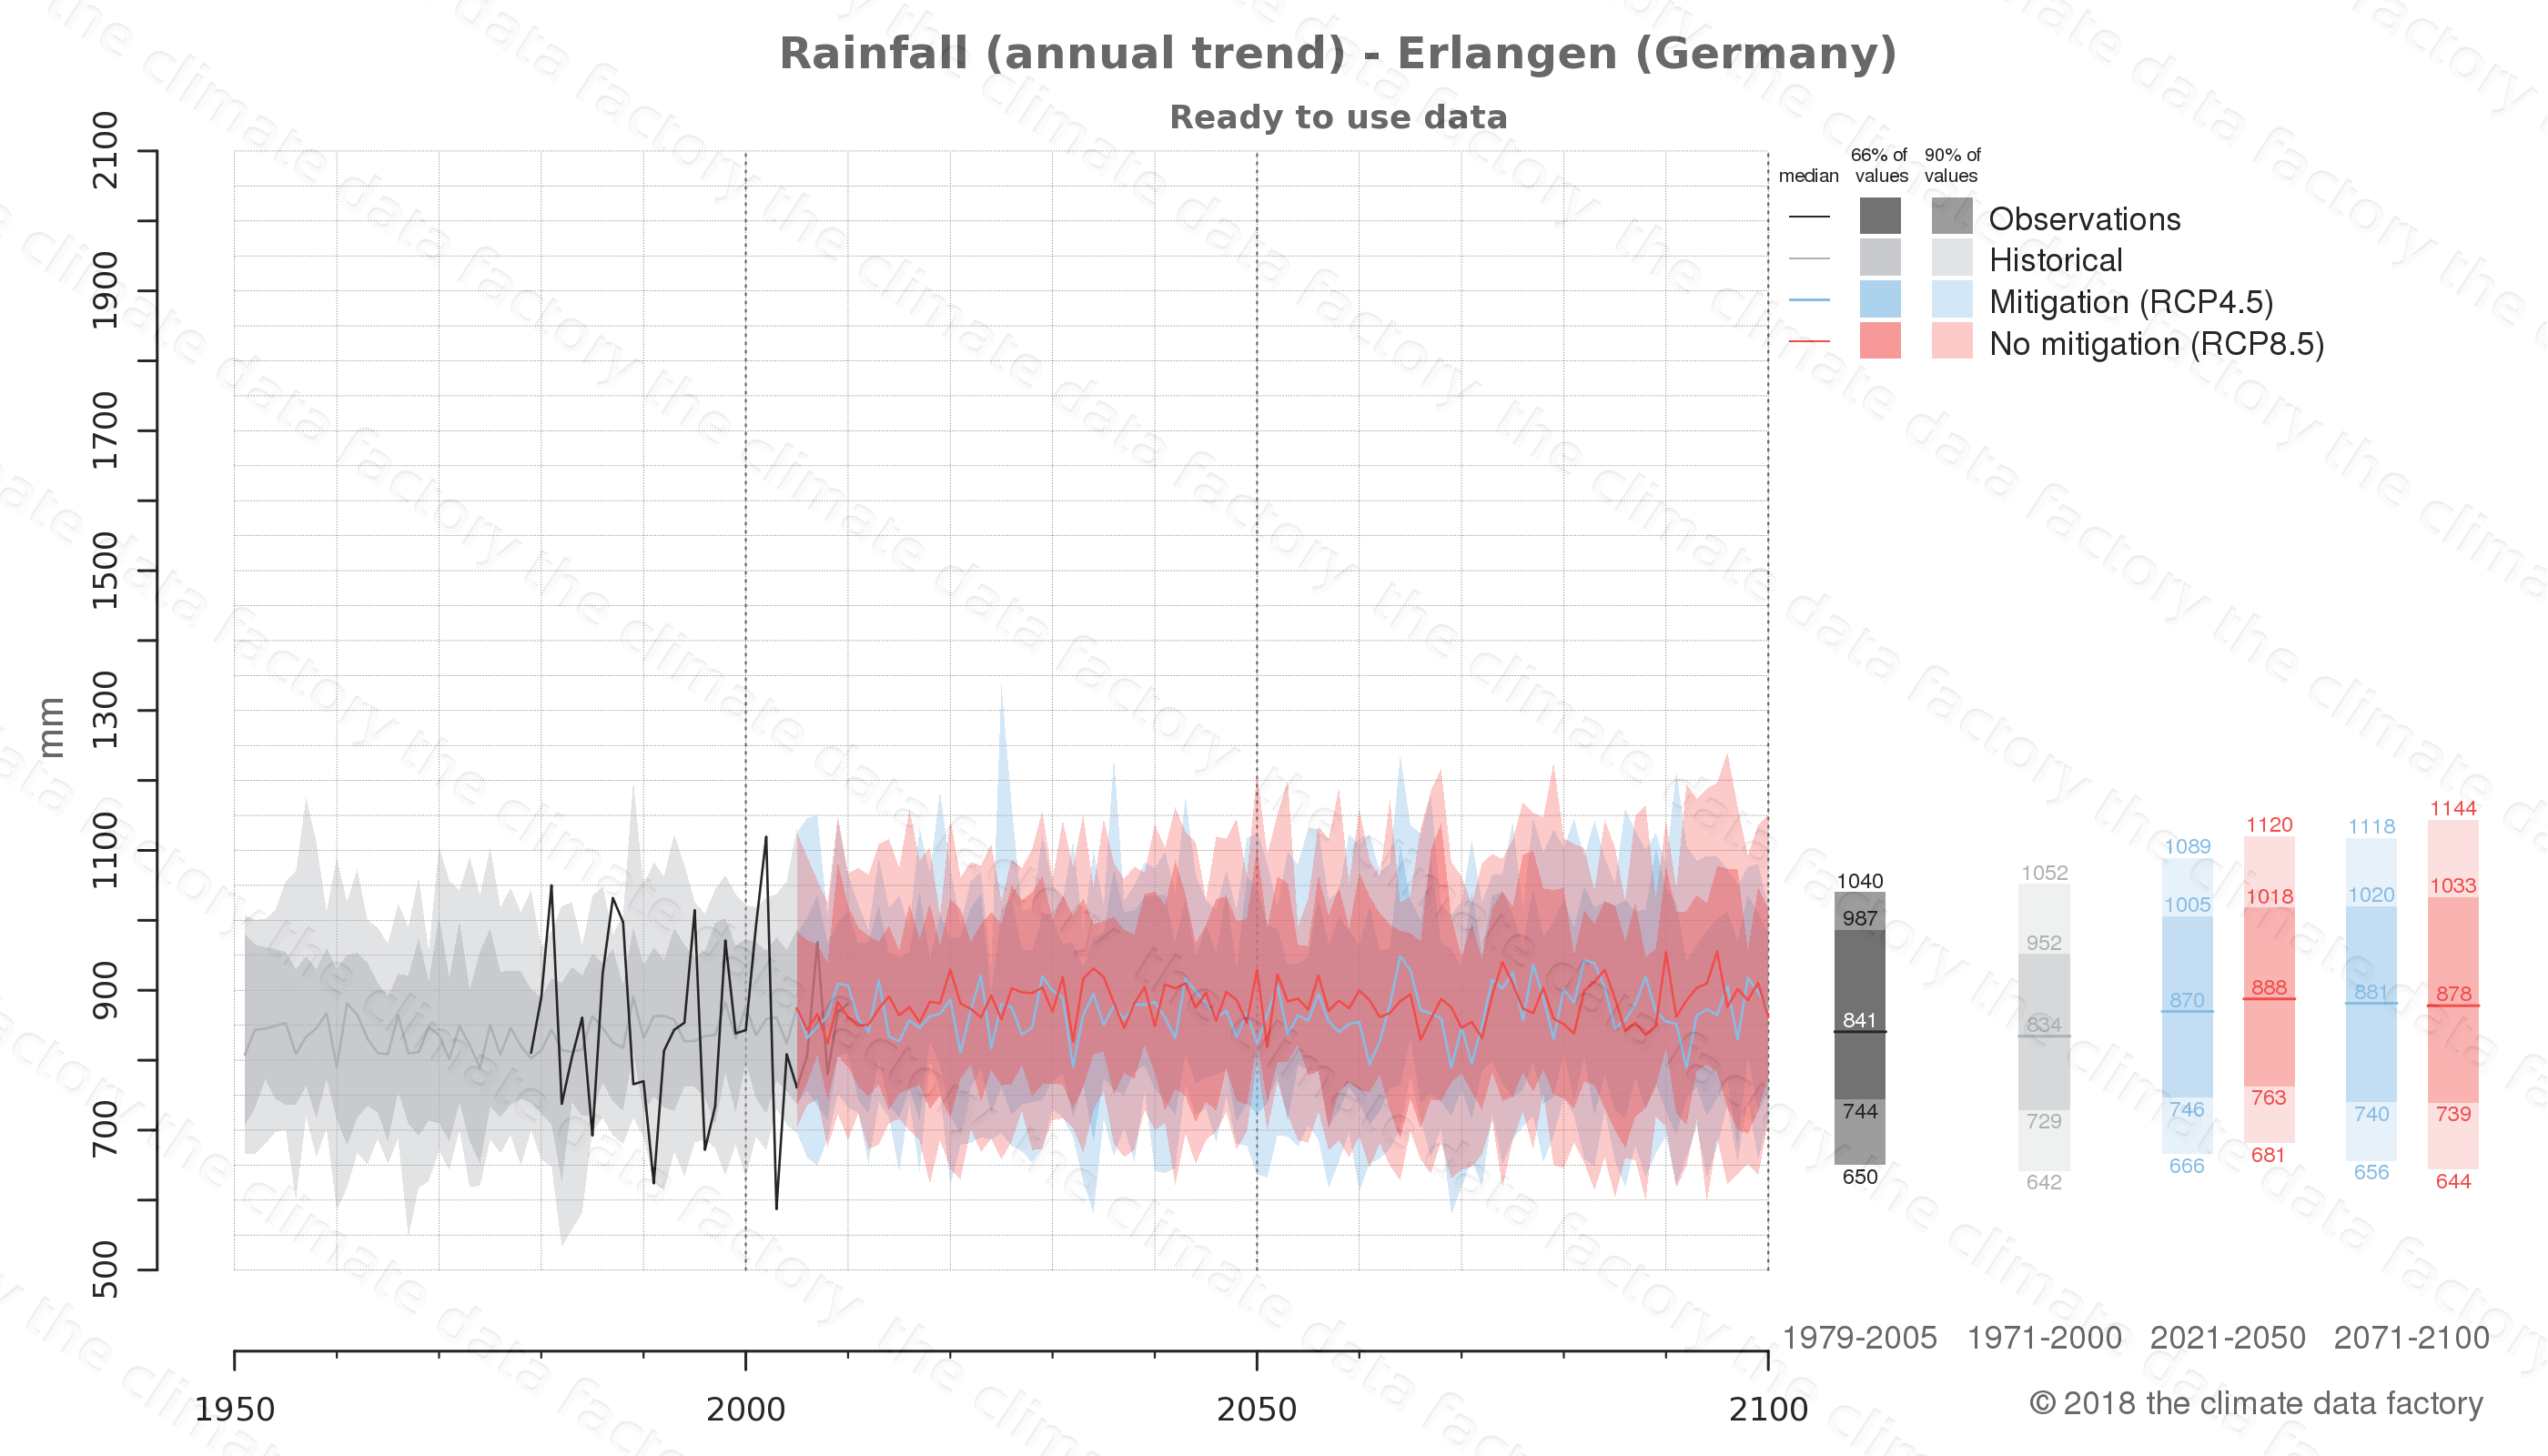 climate change data policy adaptation climate graph city data rainfall erlangen germany